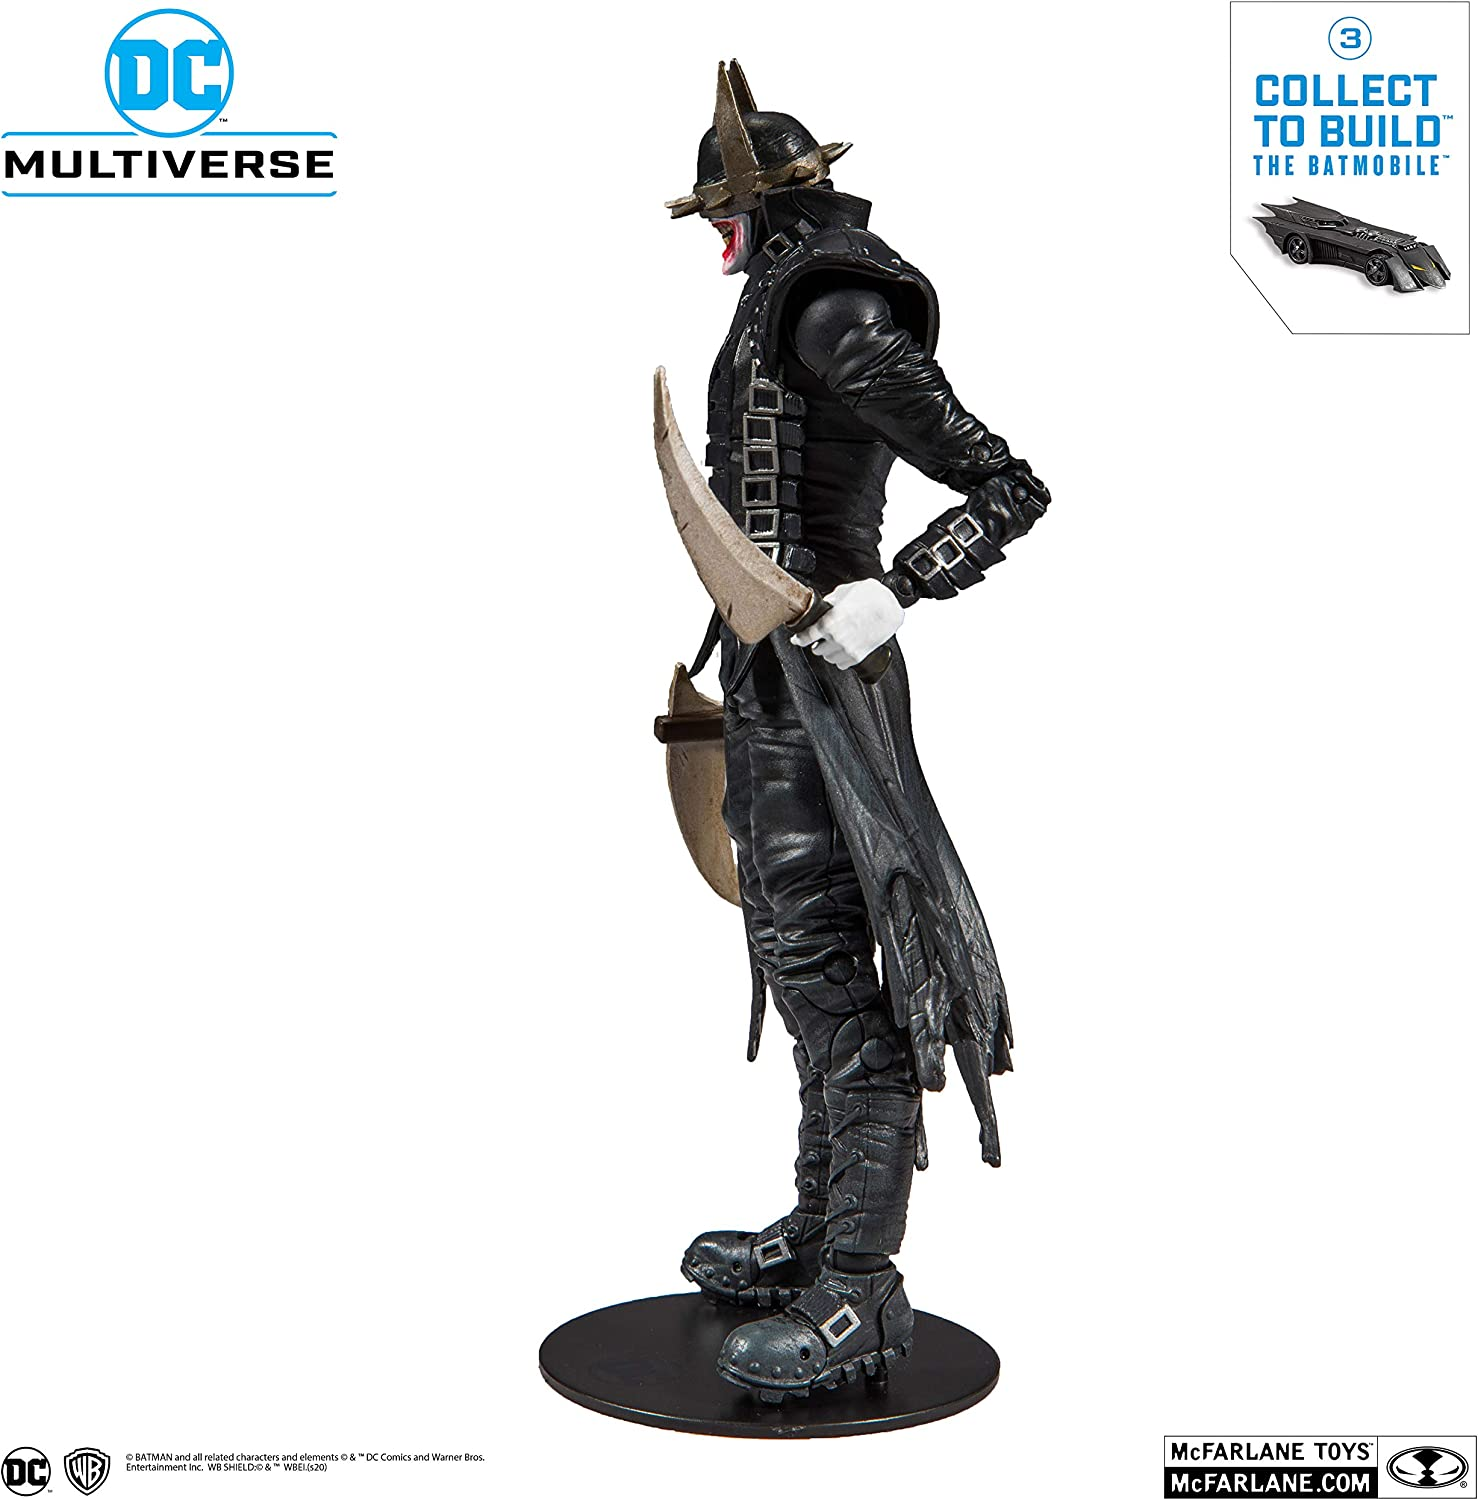 15403-0 McFarlane Toys Action Figure